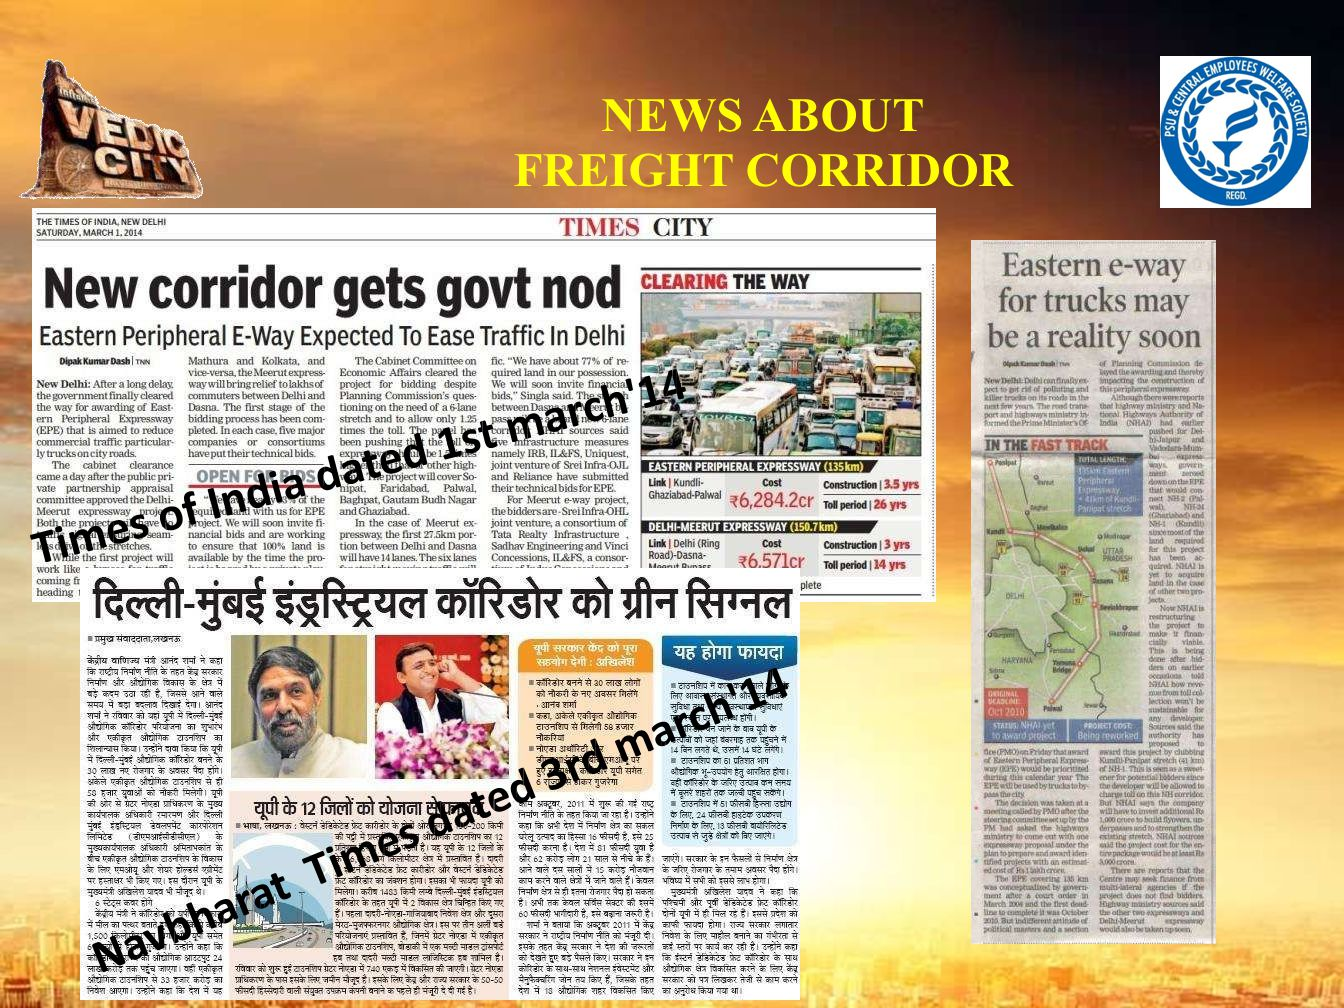 DEVELOPMENT GREATER NEWS ABOUT NOIDA Navbharat times dated 5th March'14 Dainik Jagran dated 2nd march'14